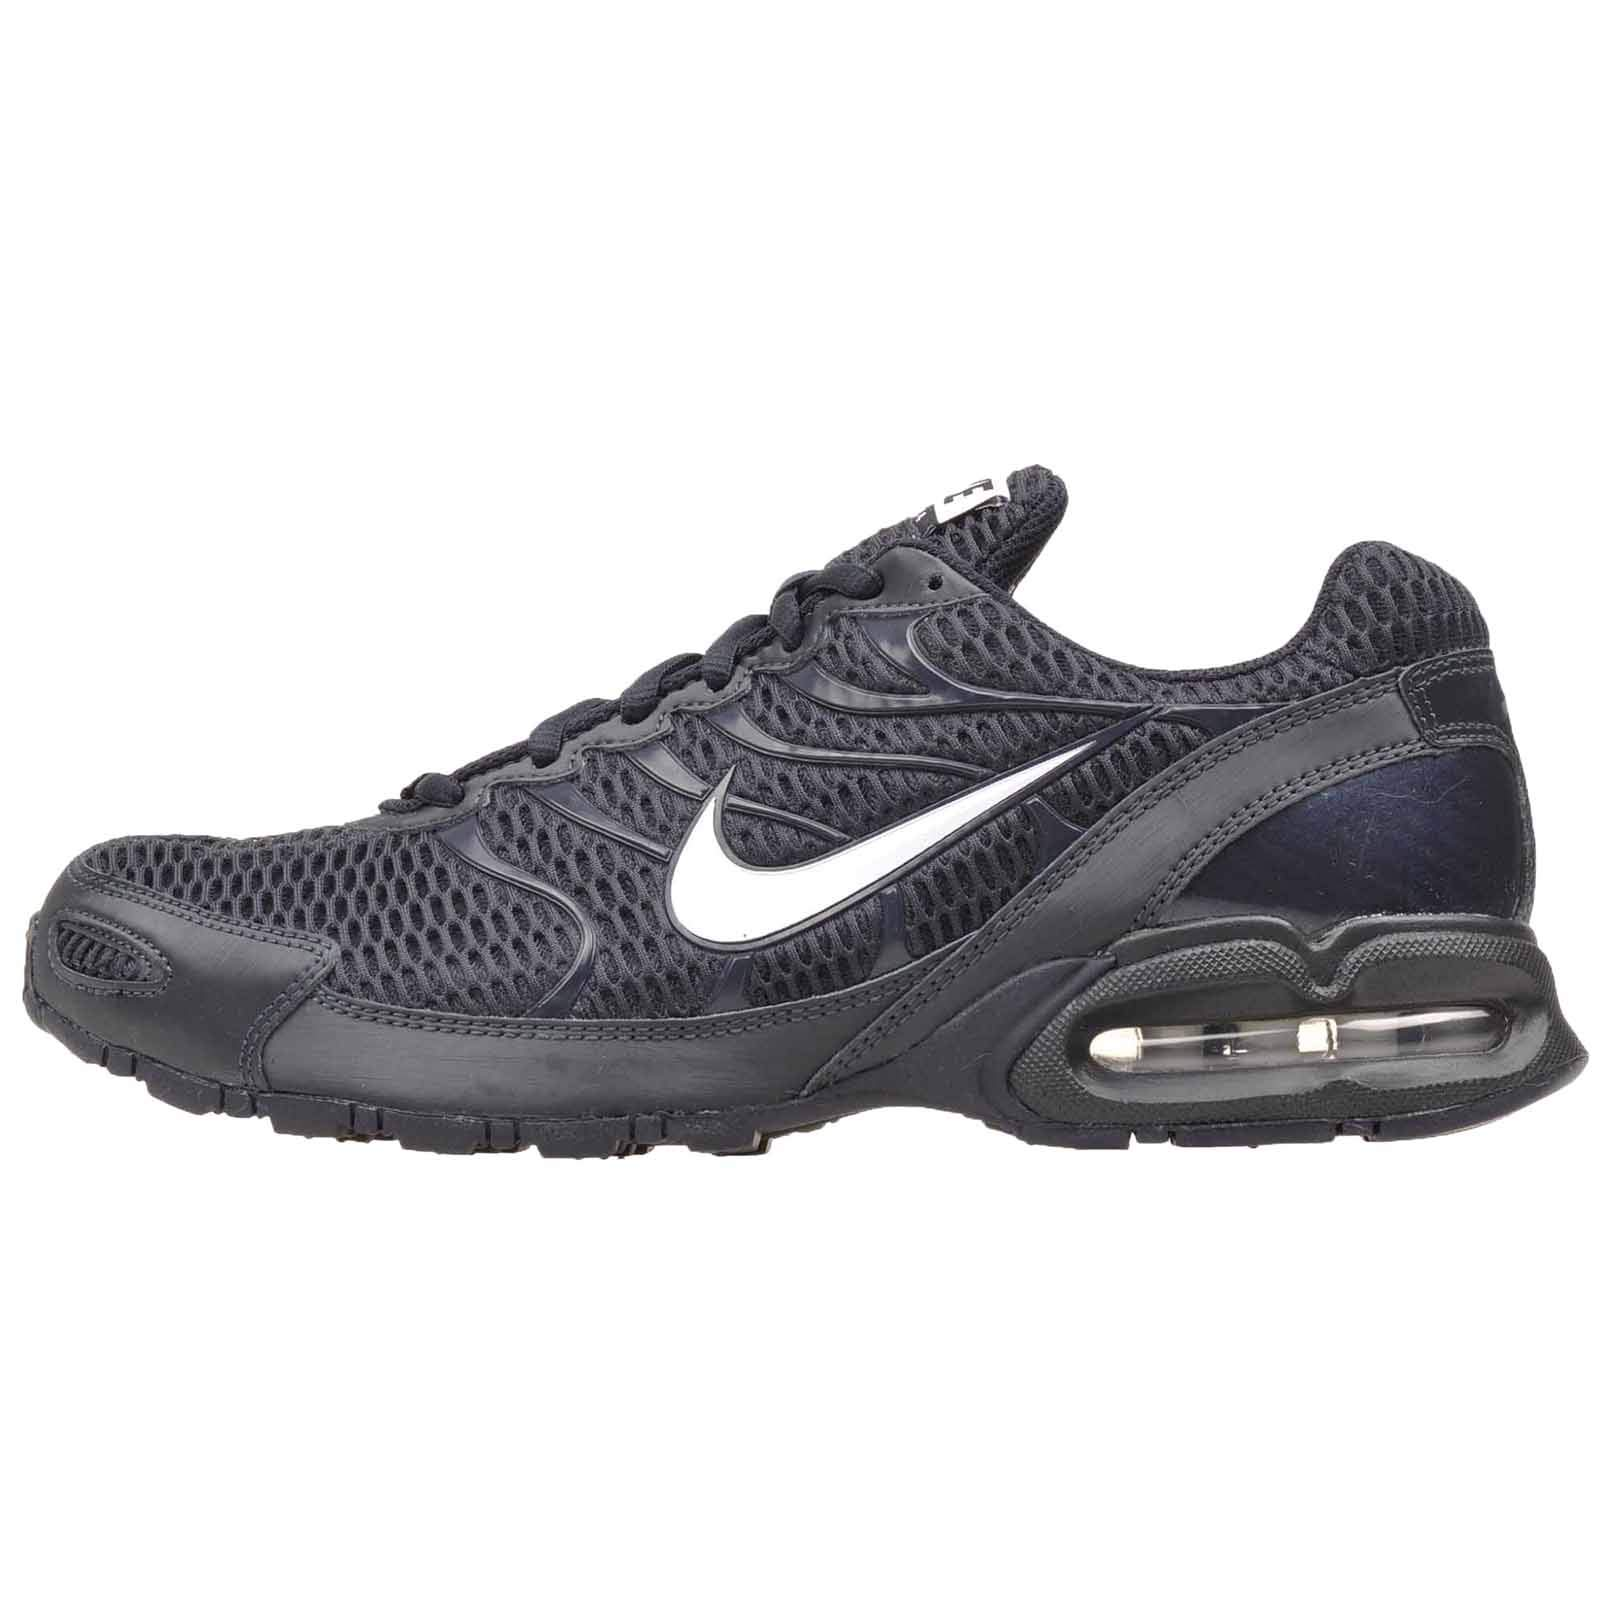 NIKE Men's Air Max Torch 4 Running Sneakers (10.5, Dark Obsidian/White)